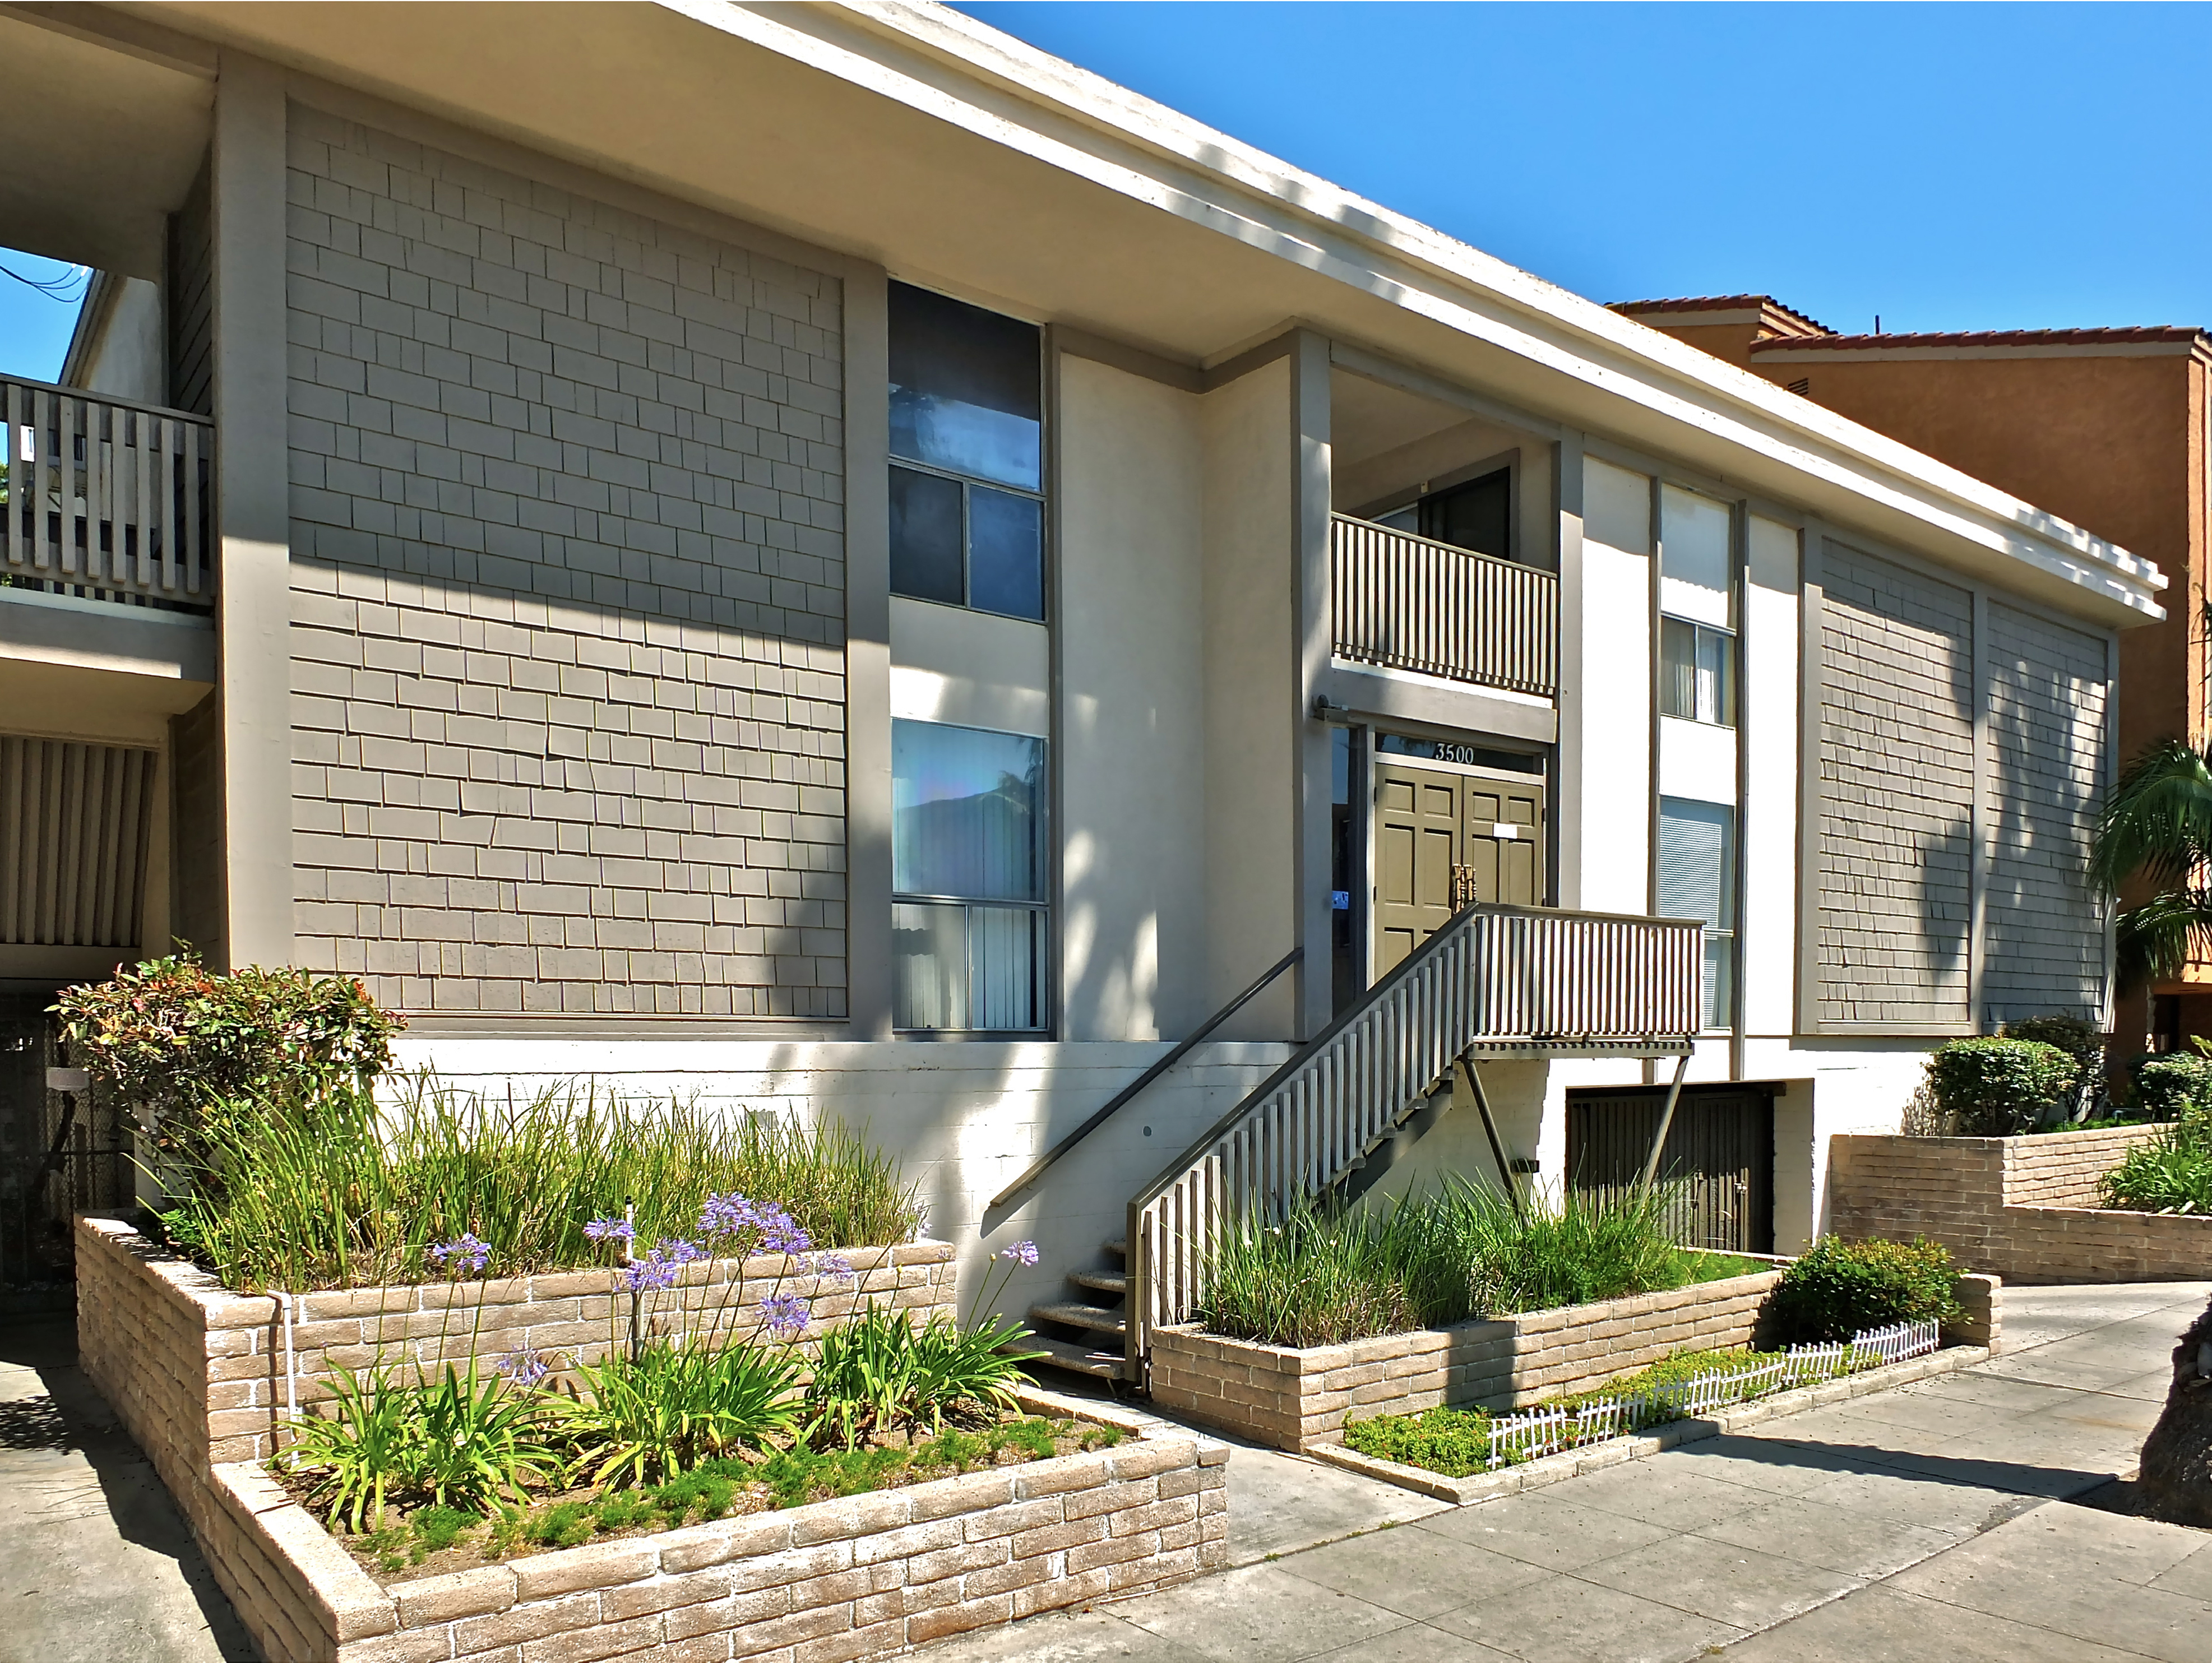 Bixby knolls condo open house may 24th 1 4 p m tom - One bedroom apartments in bixby knolls ...